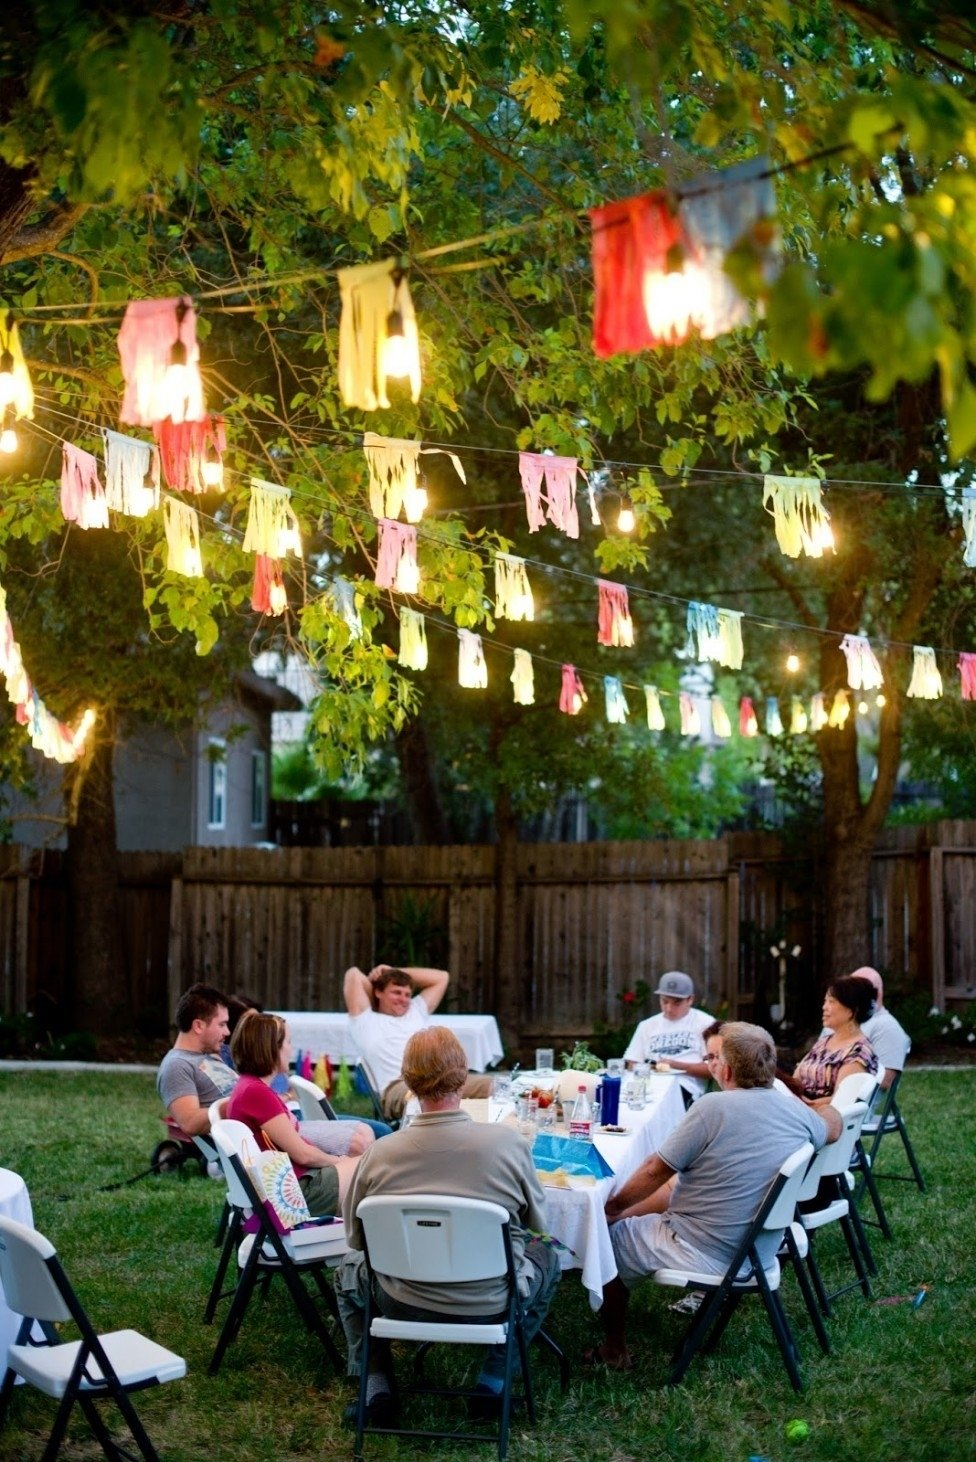 10 Most Recommended House Party Ideas For Adults backyard party ideas for adults gogo papa new house party ideas 1 2021